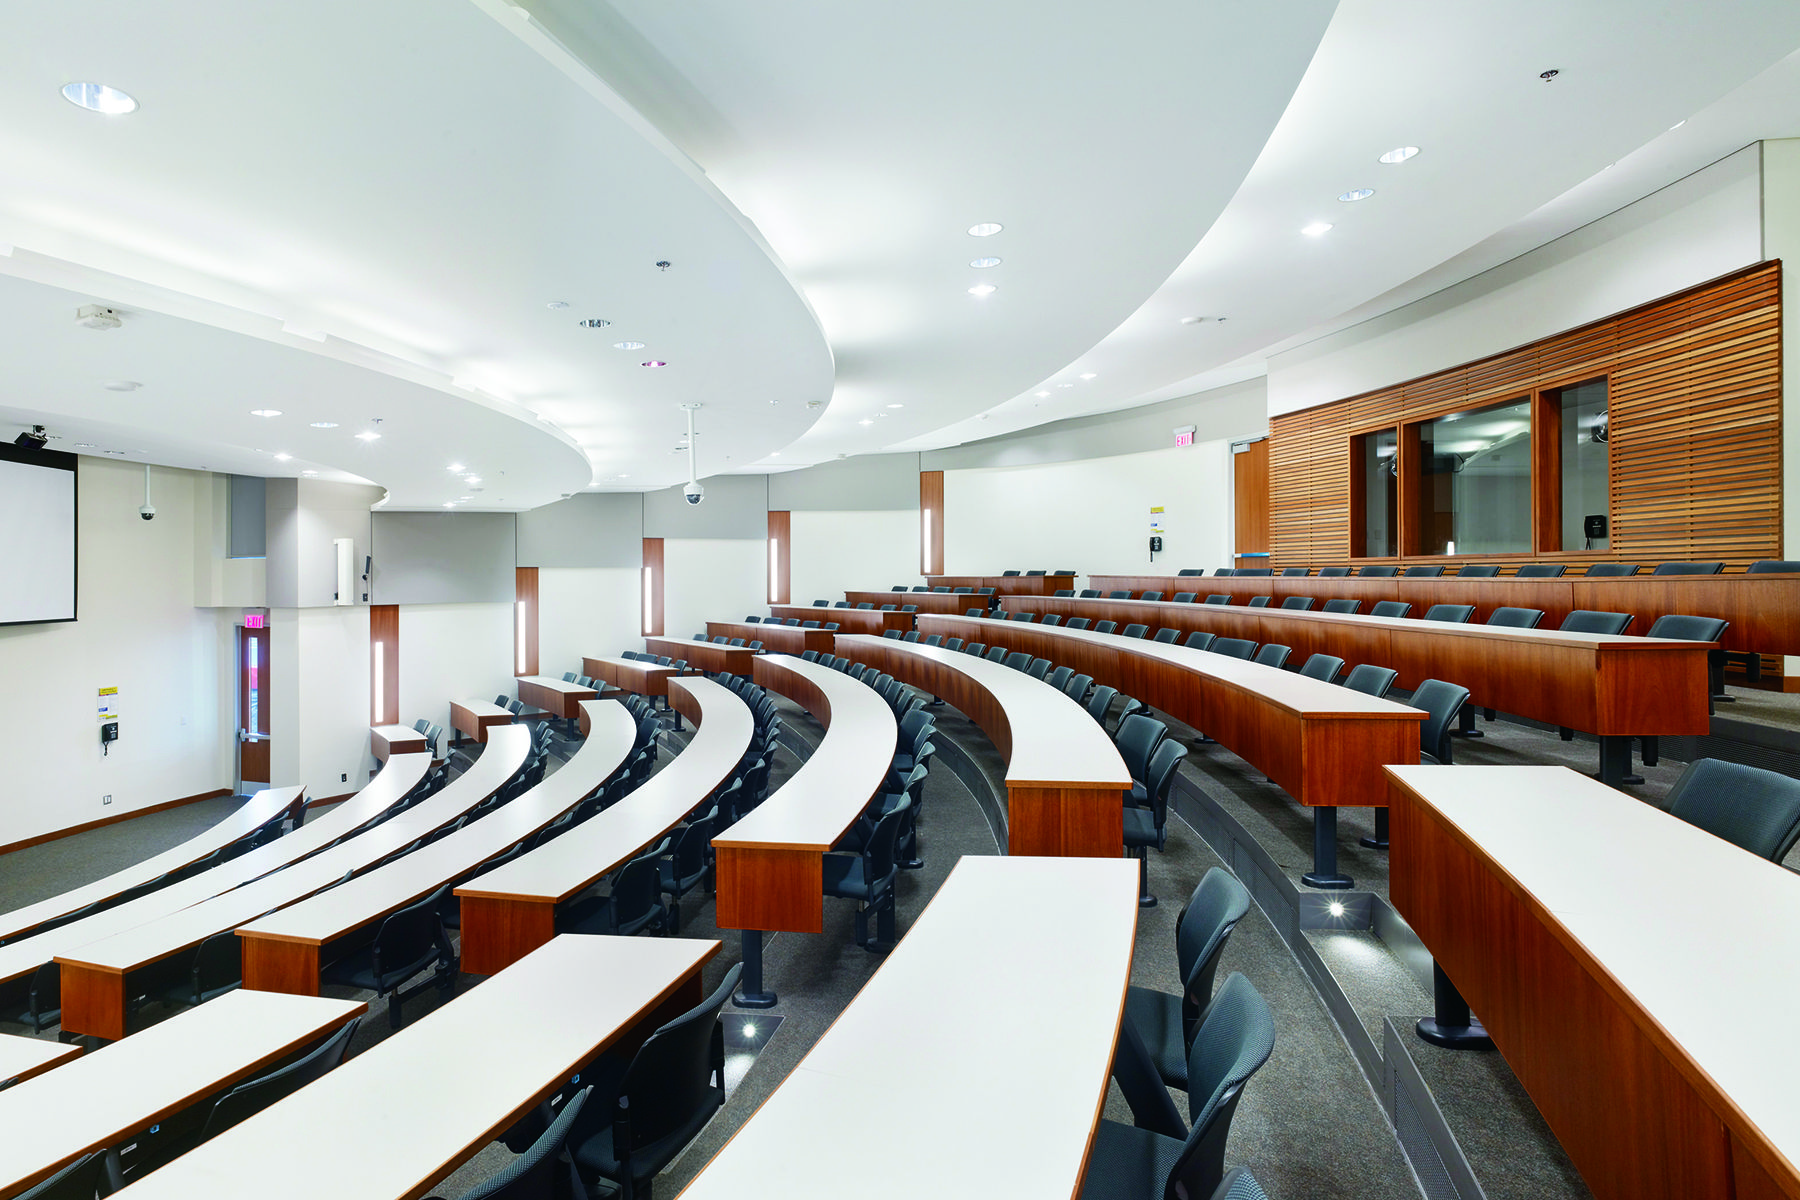 Omnia Auditorium & Lecture Hall Seating Fixed Seating for Universities College and Interior Design Inspiring Learning Spaces Pinterest